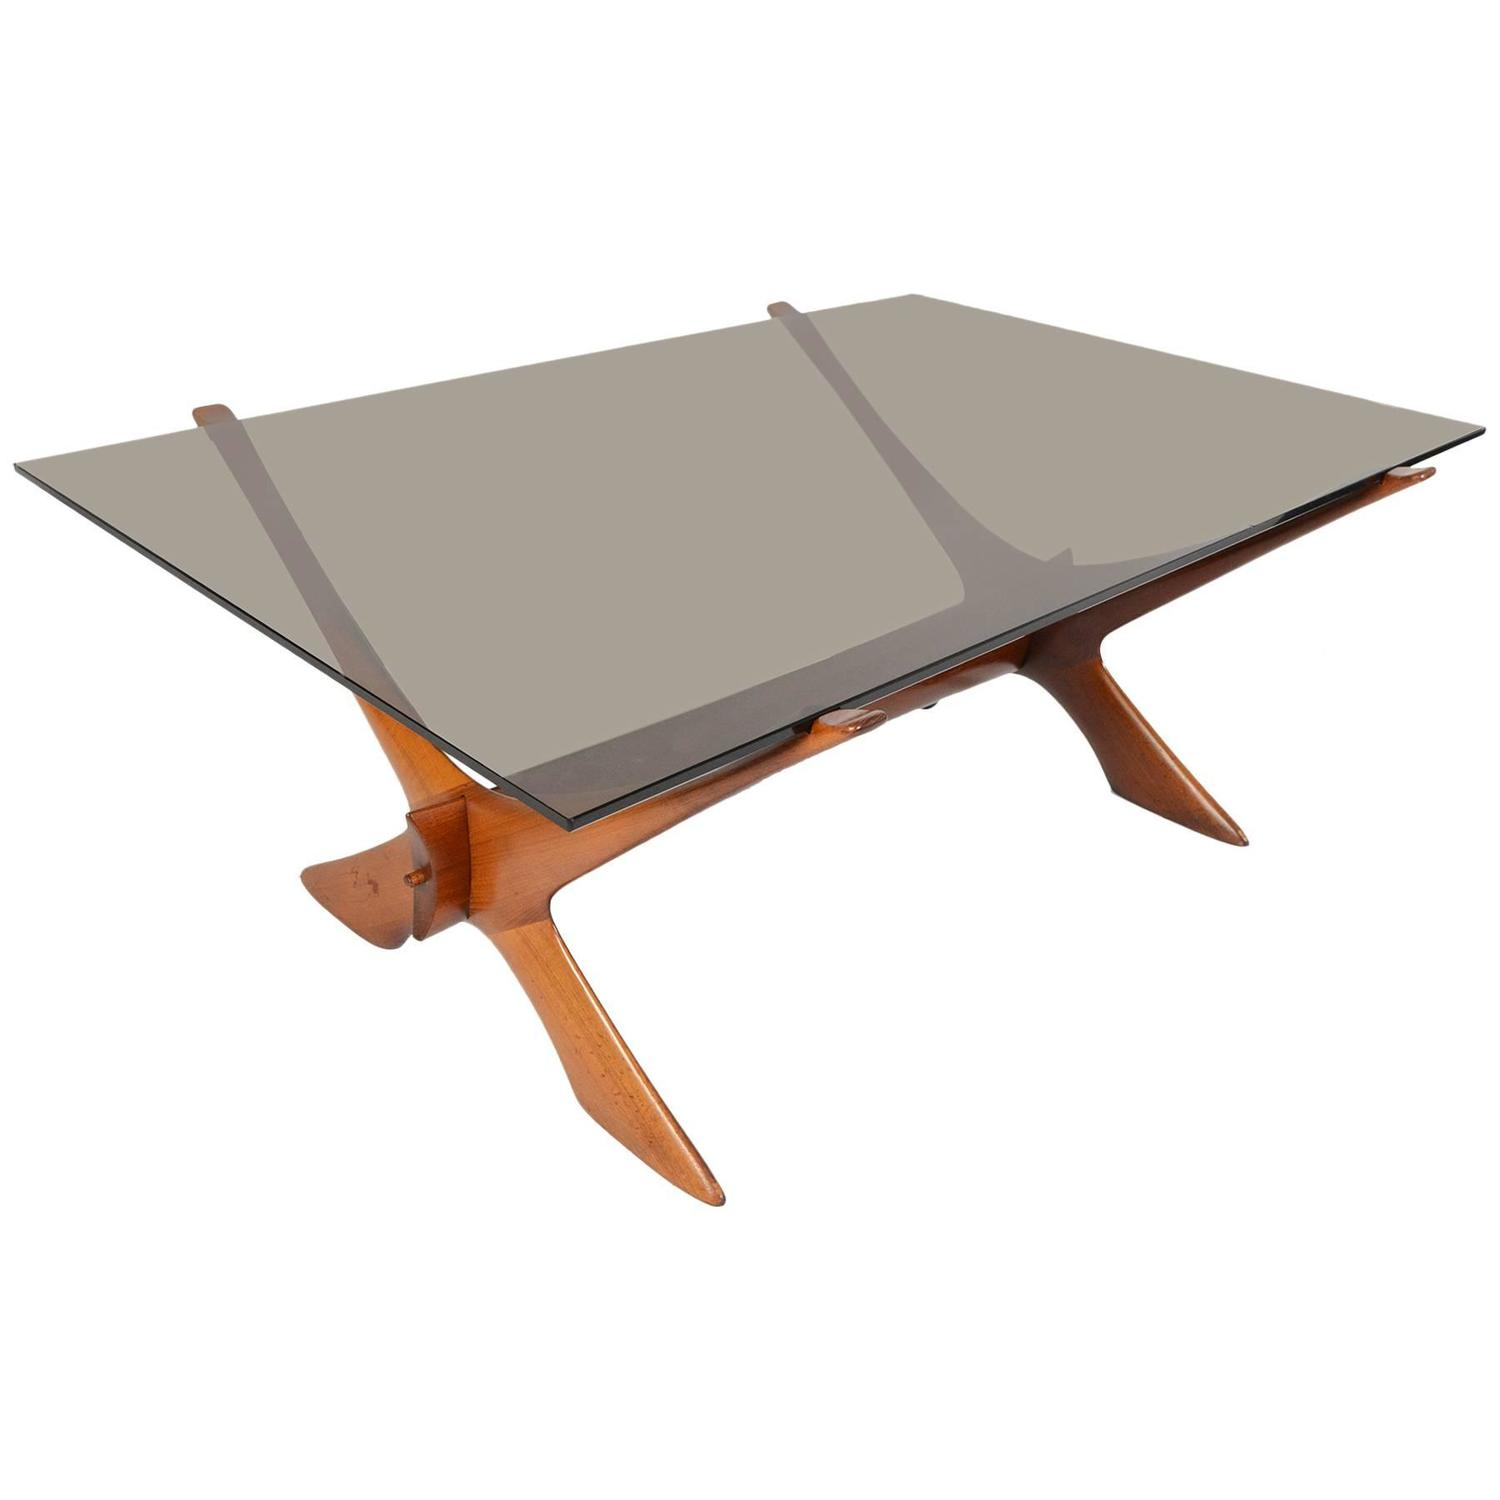 Fredrik Schriever Abeln Condor Teak and Glass Coffee Table For